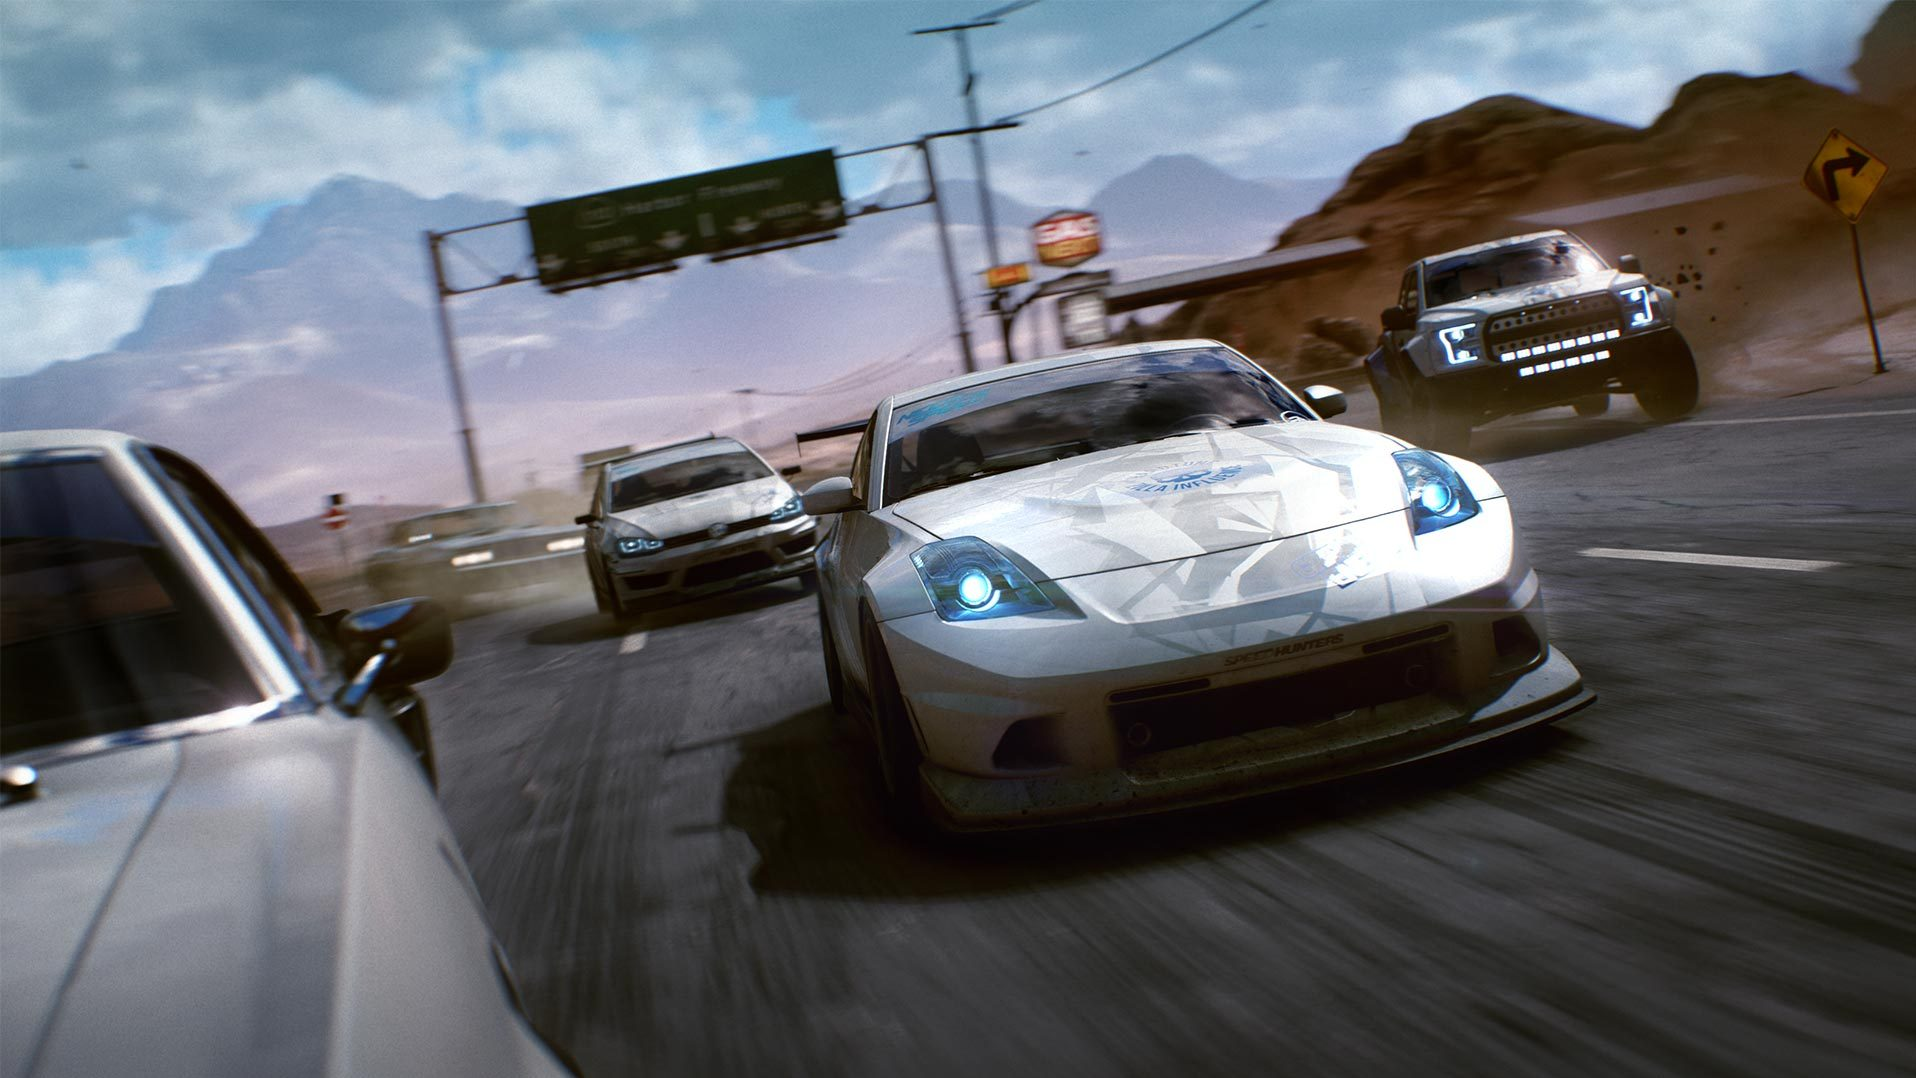 nfs-payback-high-stakes-competition_jpg_adapt_crop16x9.jpg